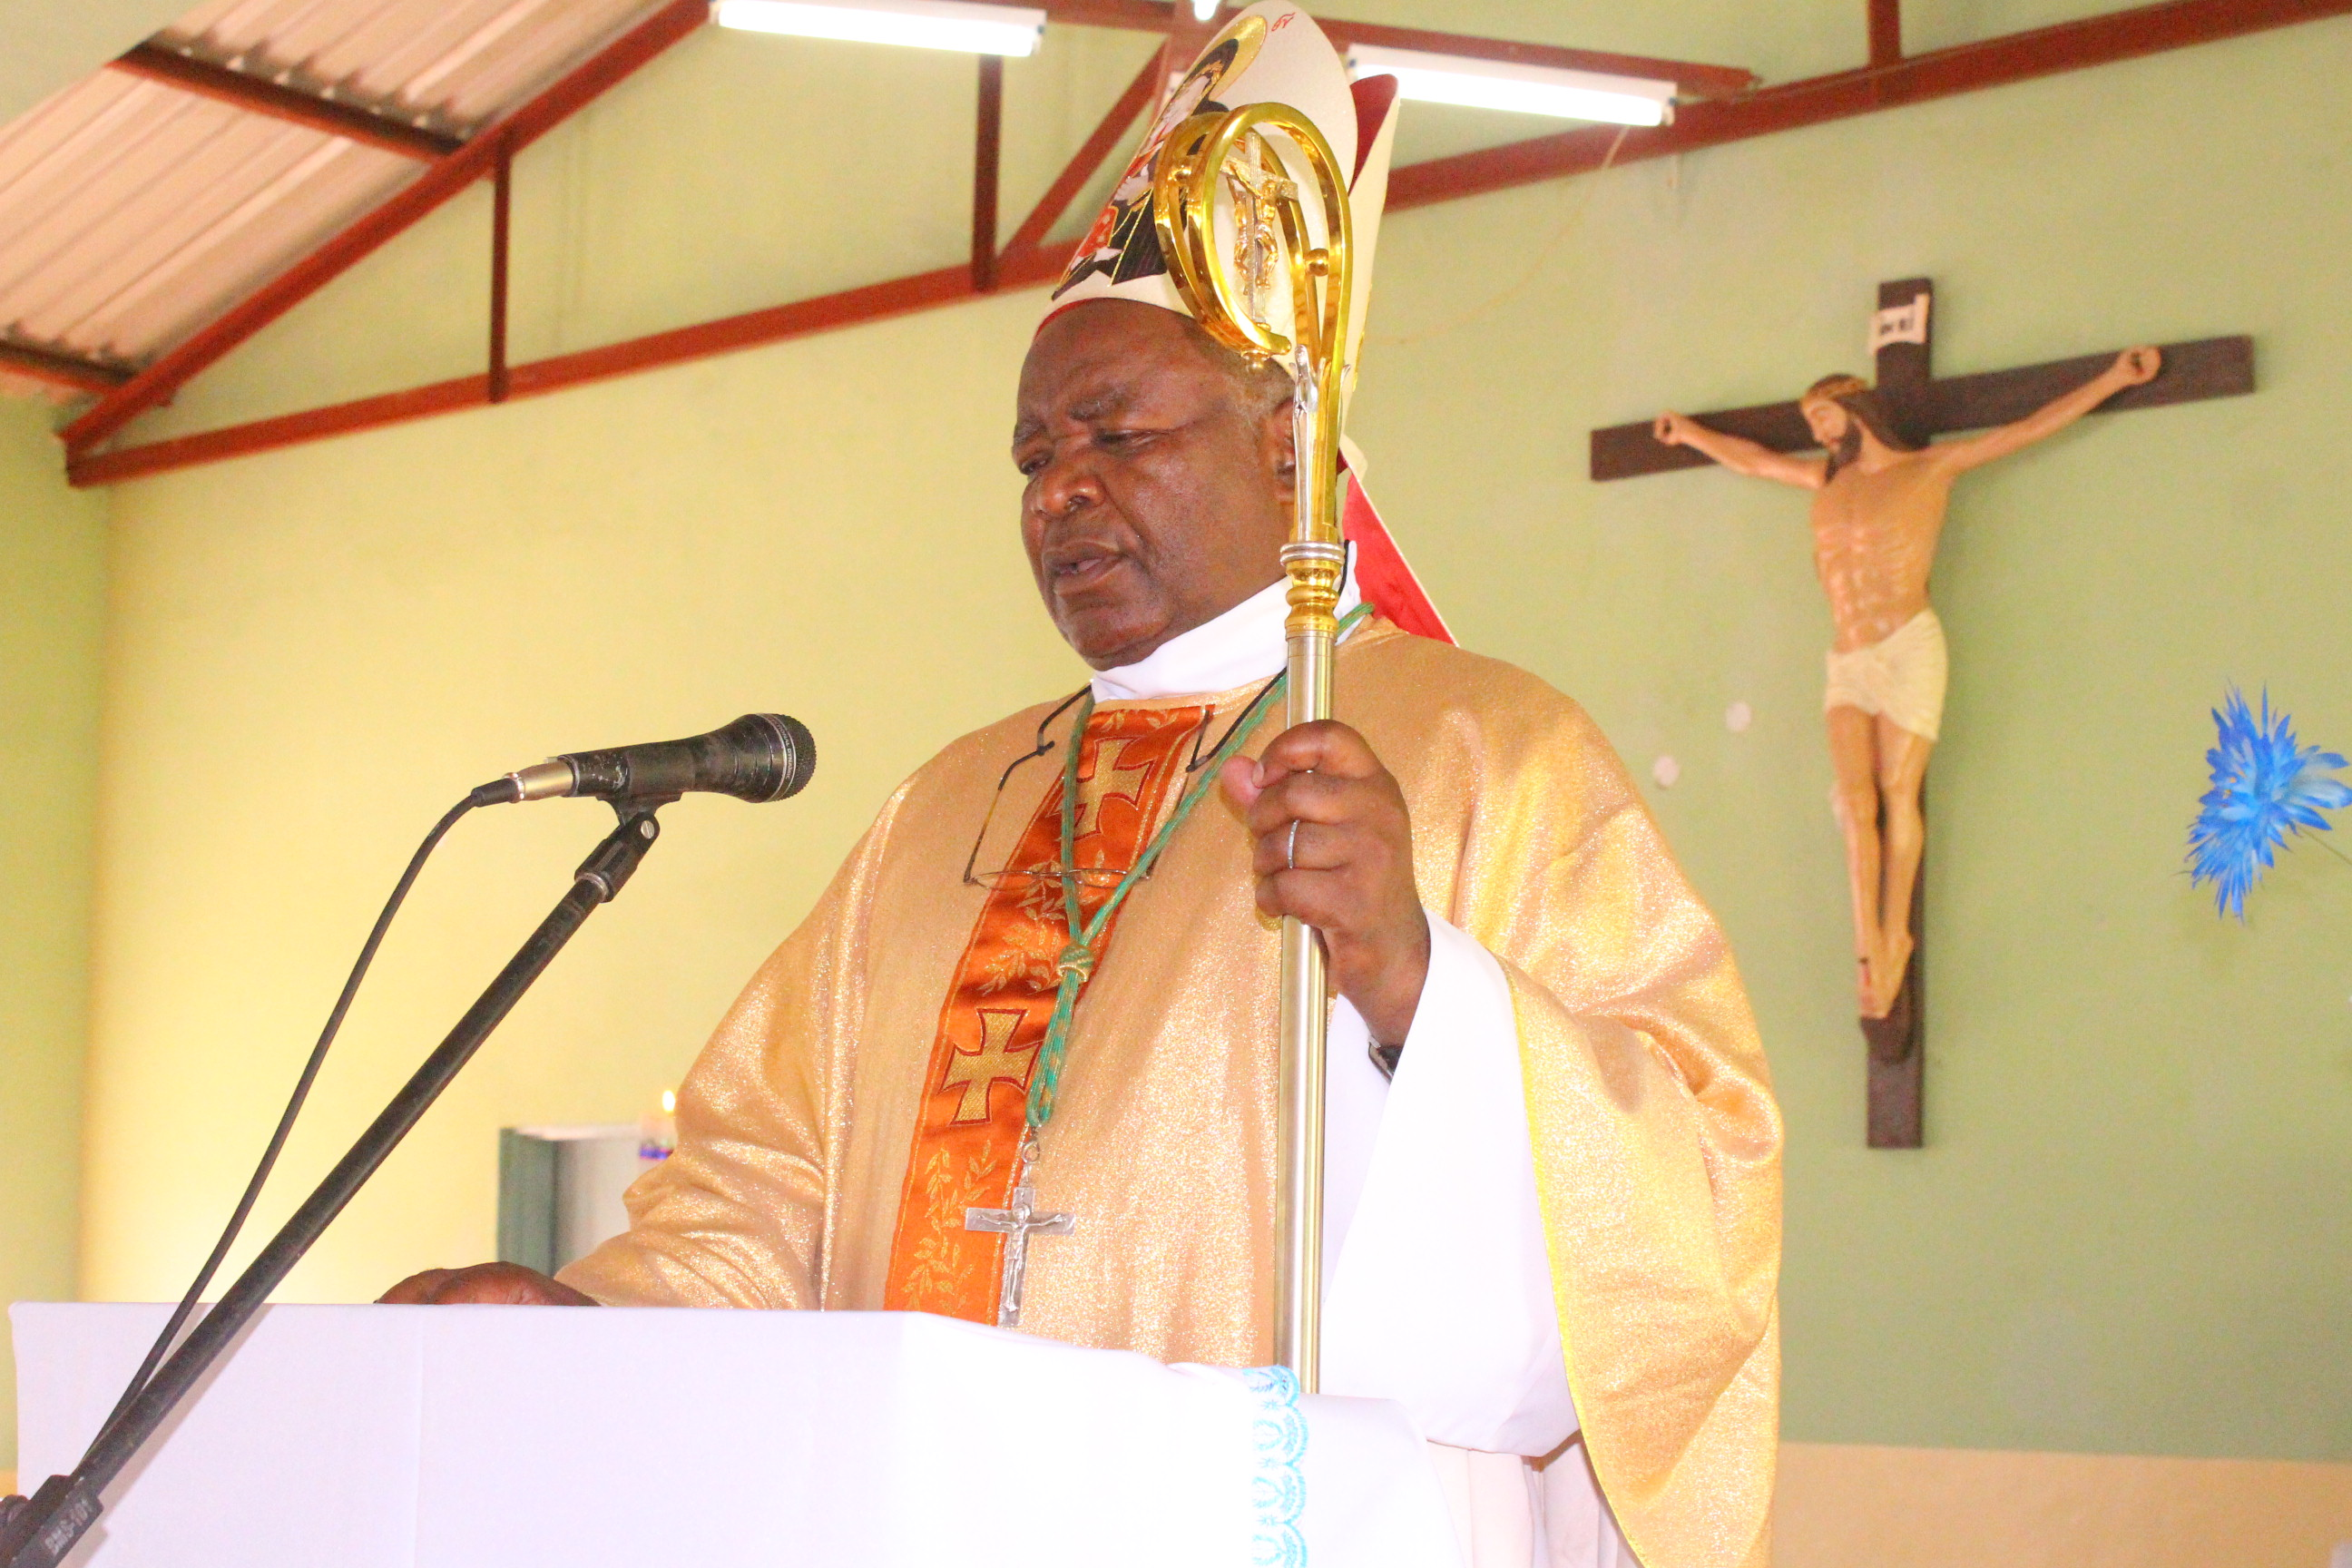 Bishop Mtumbuka Impressed With Peaceful Coexistence Among Religions